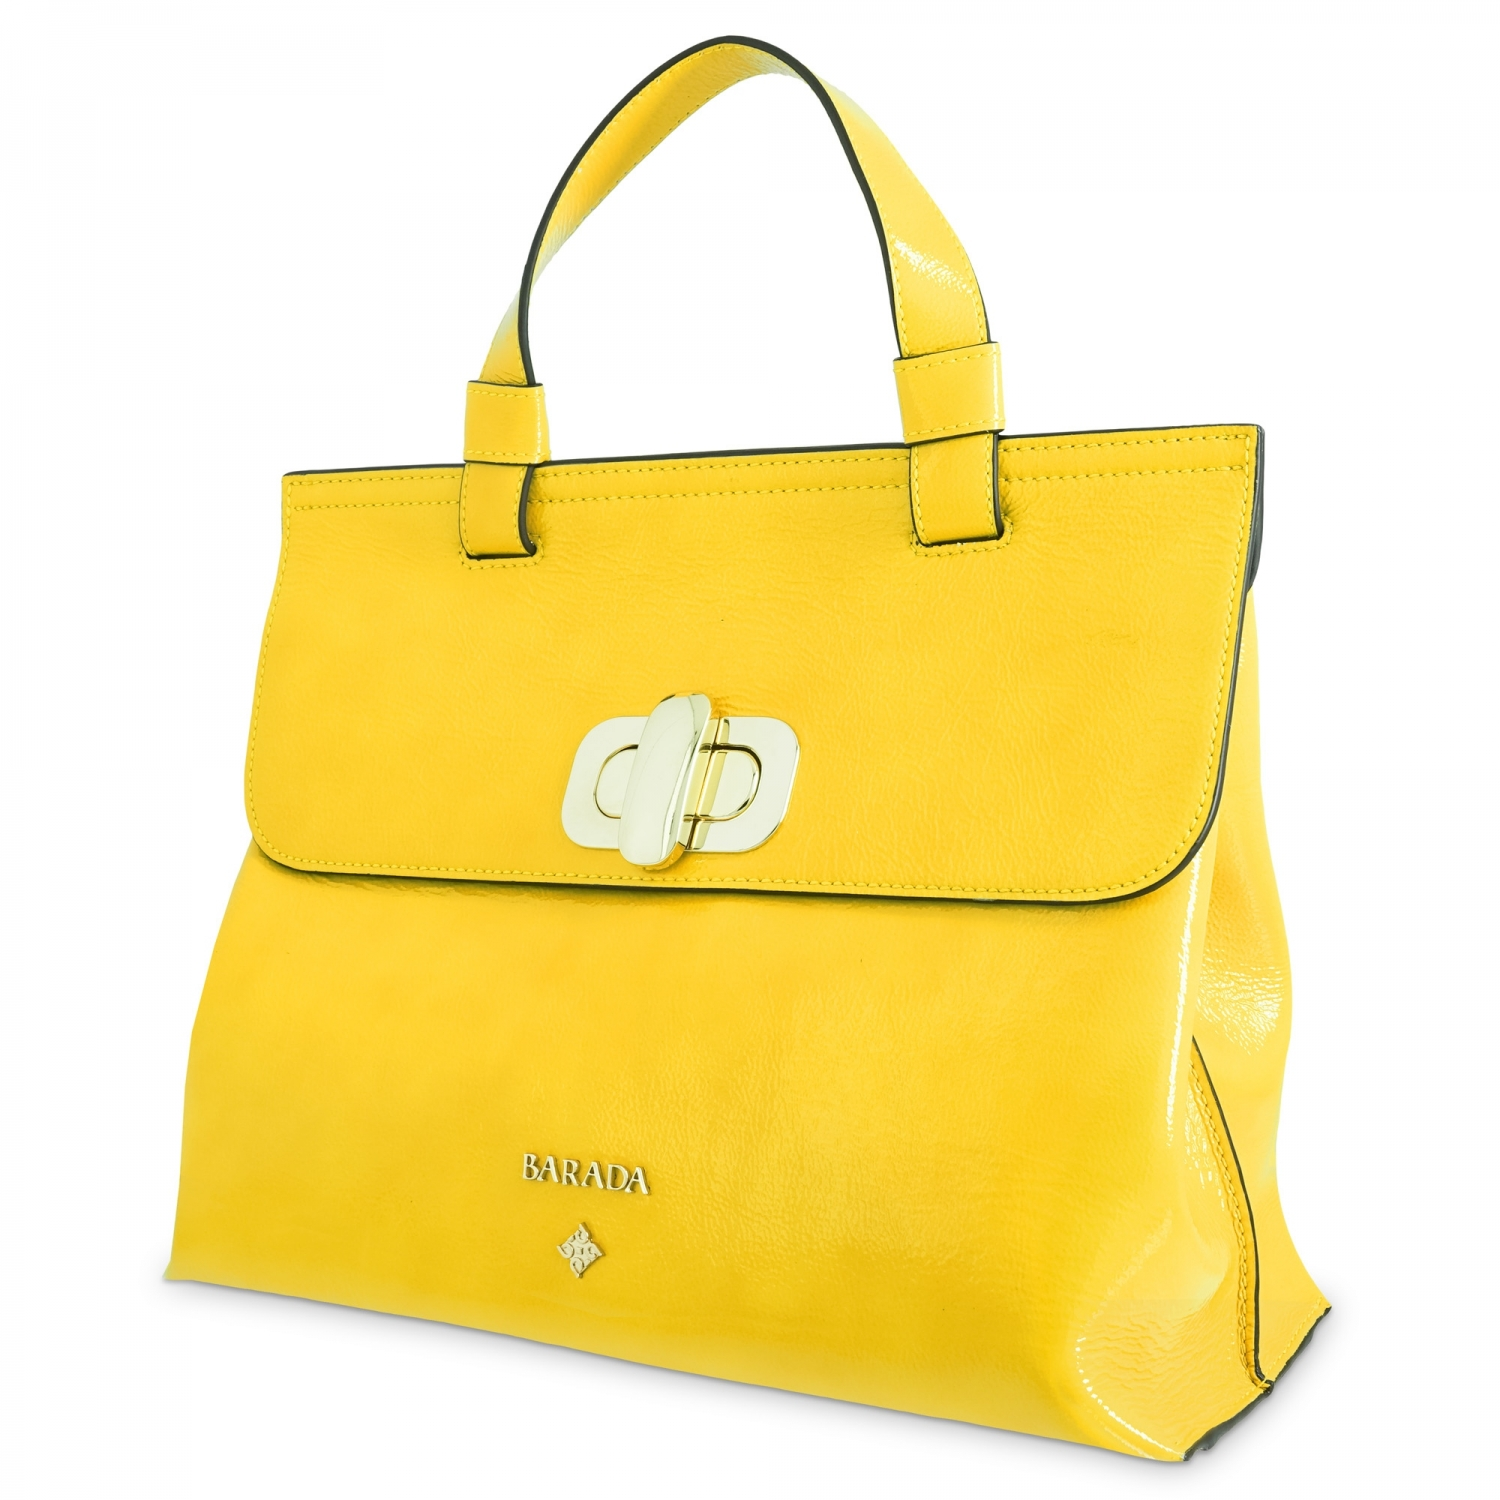 Handbag Collection Dasha in Wrinkled Patent leather (Calf) and Yellow  colour - Barada